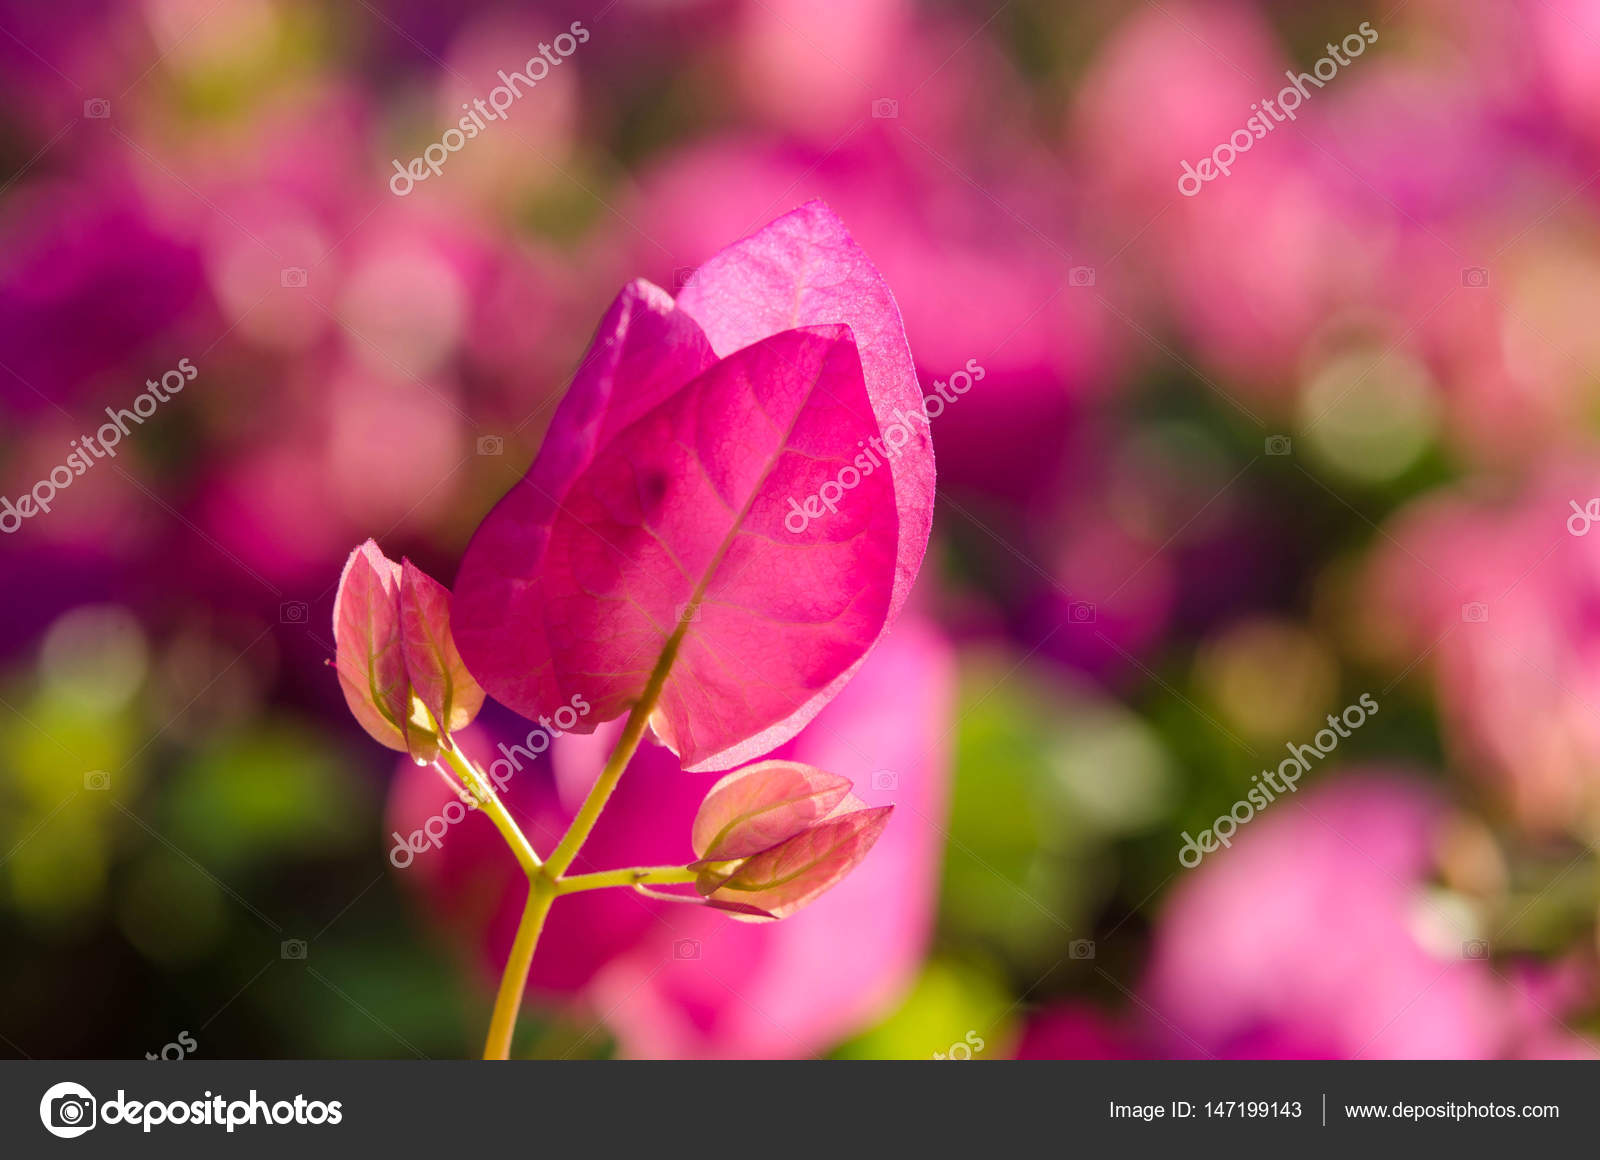 Flowering Bushes With Pink Flowers Stock Photo Soyka564 147199143